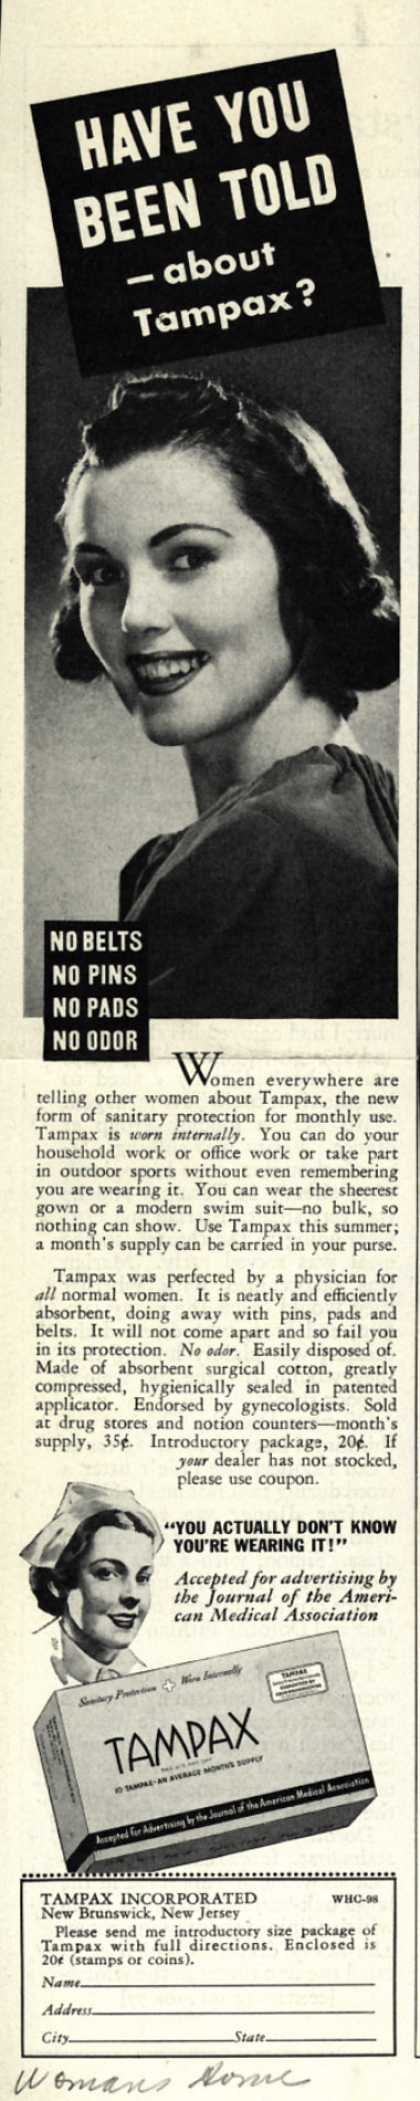 Tampax's Tampons – Have You Been Told-about Tampax? (1938)